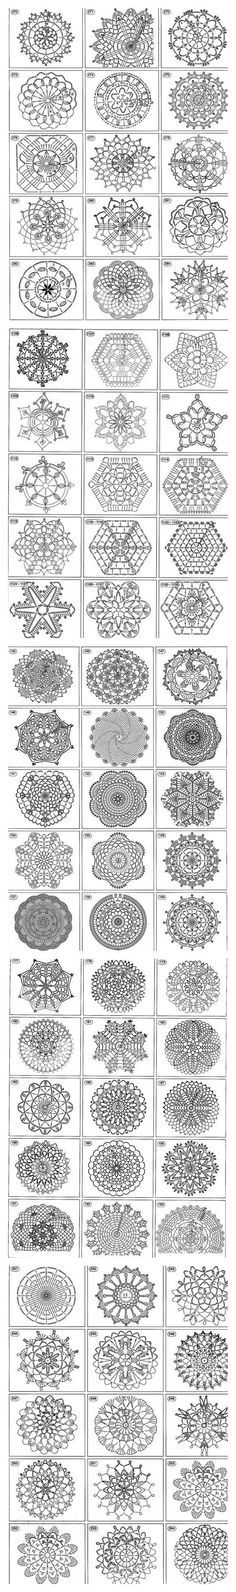 crochet motif, afghan squares, coasters, snowflakes, doilies, triangles stitch chart diagram patterns